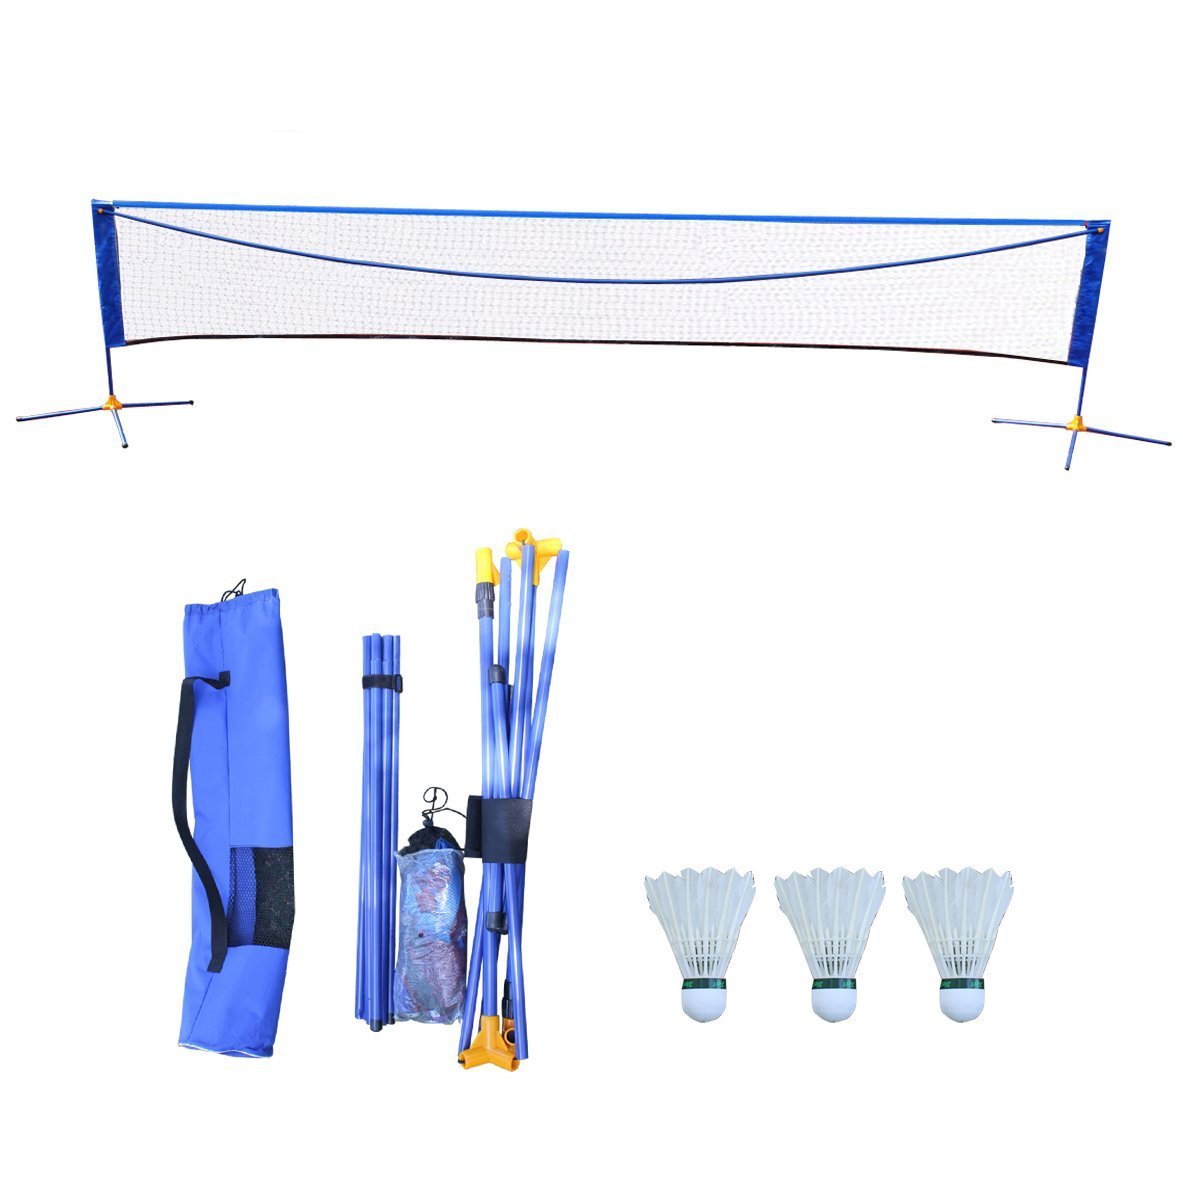 Hi Suyi Portable Height Adujstable Badminton Volleyball Tennis Net Set Equipment with Poles Stand and Carry Bag 3m /5m for Kids Adult Outdoor Sports